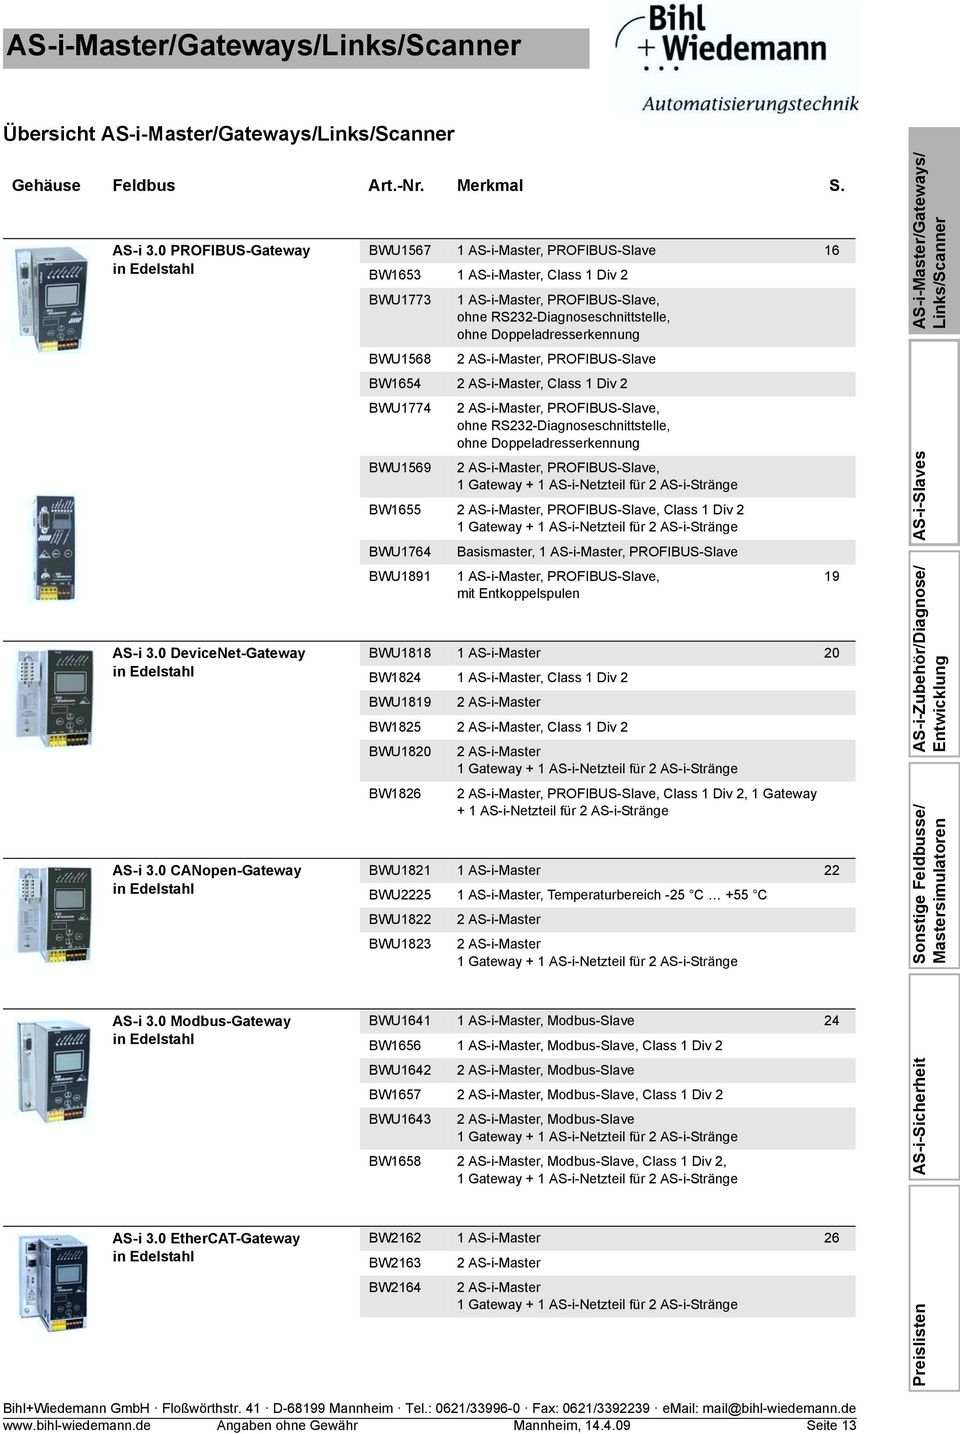 Doppeladresserkennung BWU1568 2 AS-i-Master, PROFIBUS-Slave BW1654 2 AS-i-Master, Class 1 Div 2 BWU1774 2 AS-i-Master, PROFIBUS-Slave, ohne RS232-Diagnoseschnittstelle, ohne Doppeladresserkennung